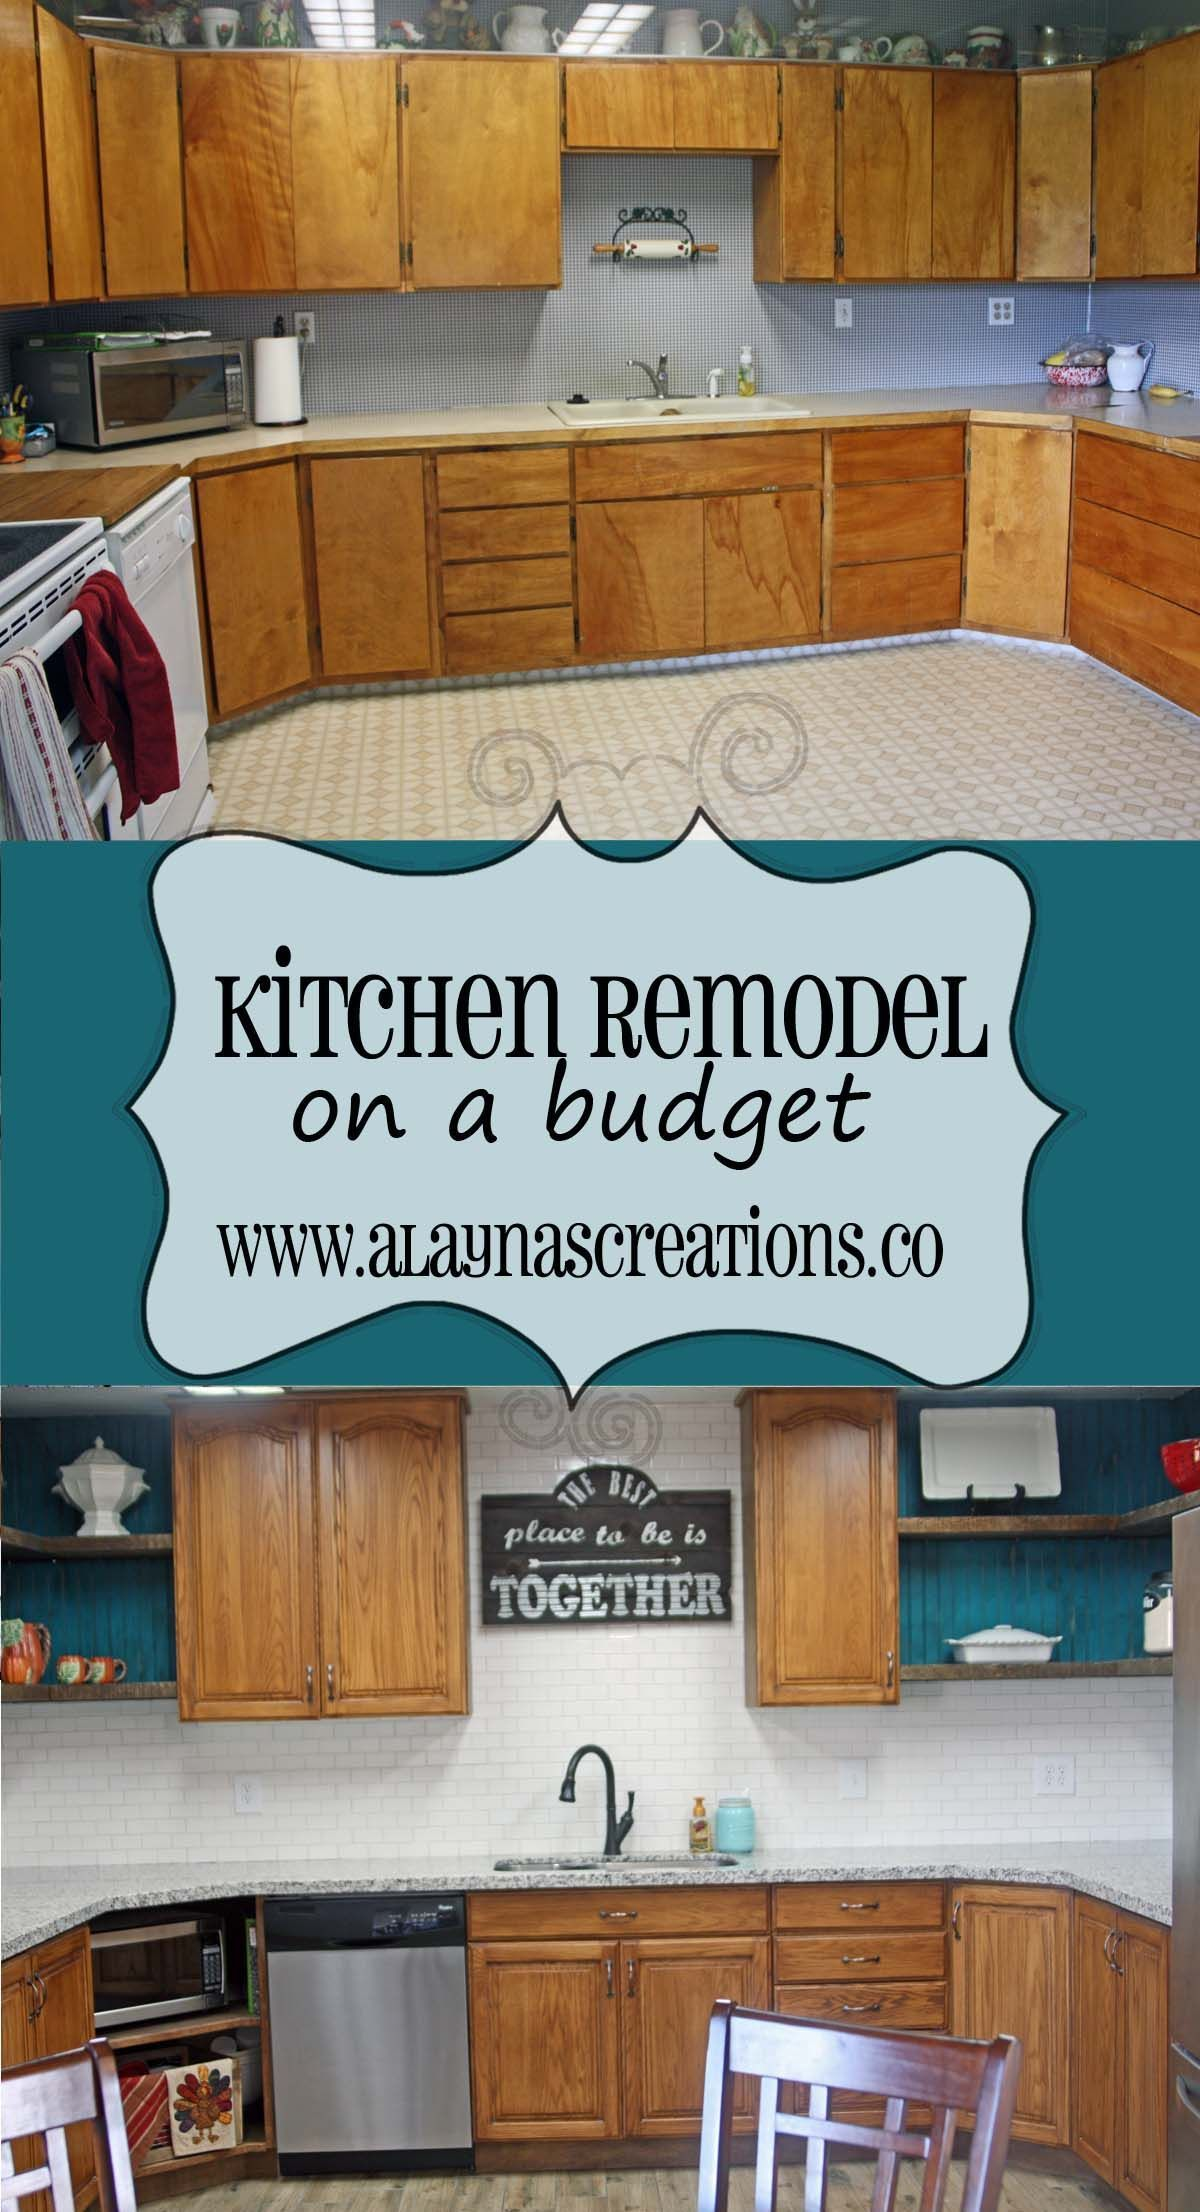 Diy kitchen remodel on a budget follow along with us step by step diy kitchen remodel on a budget follow along with us step by step as we solutioingenieria Images